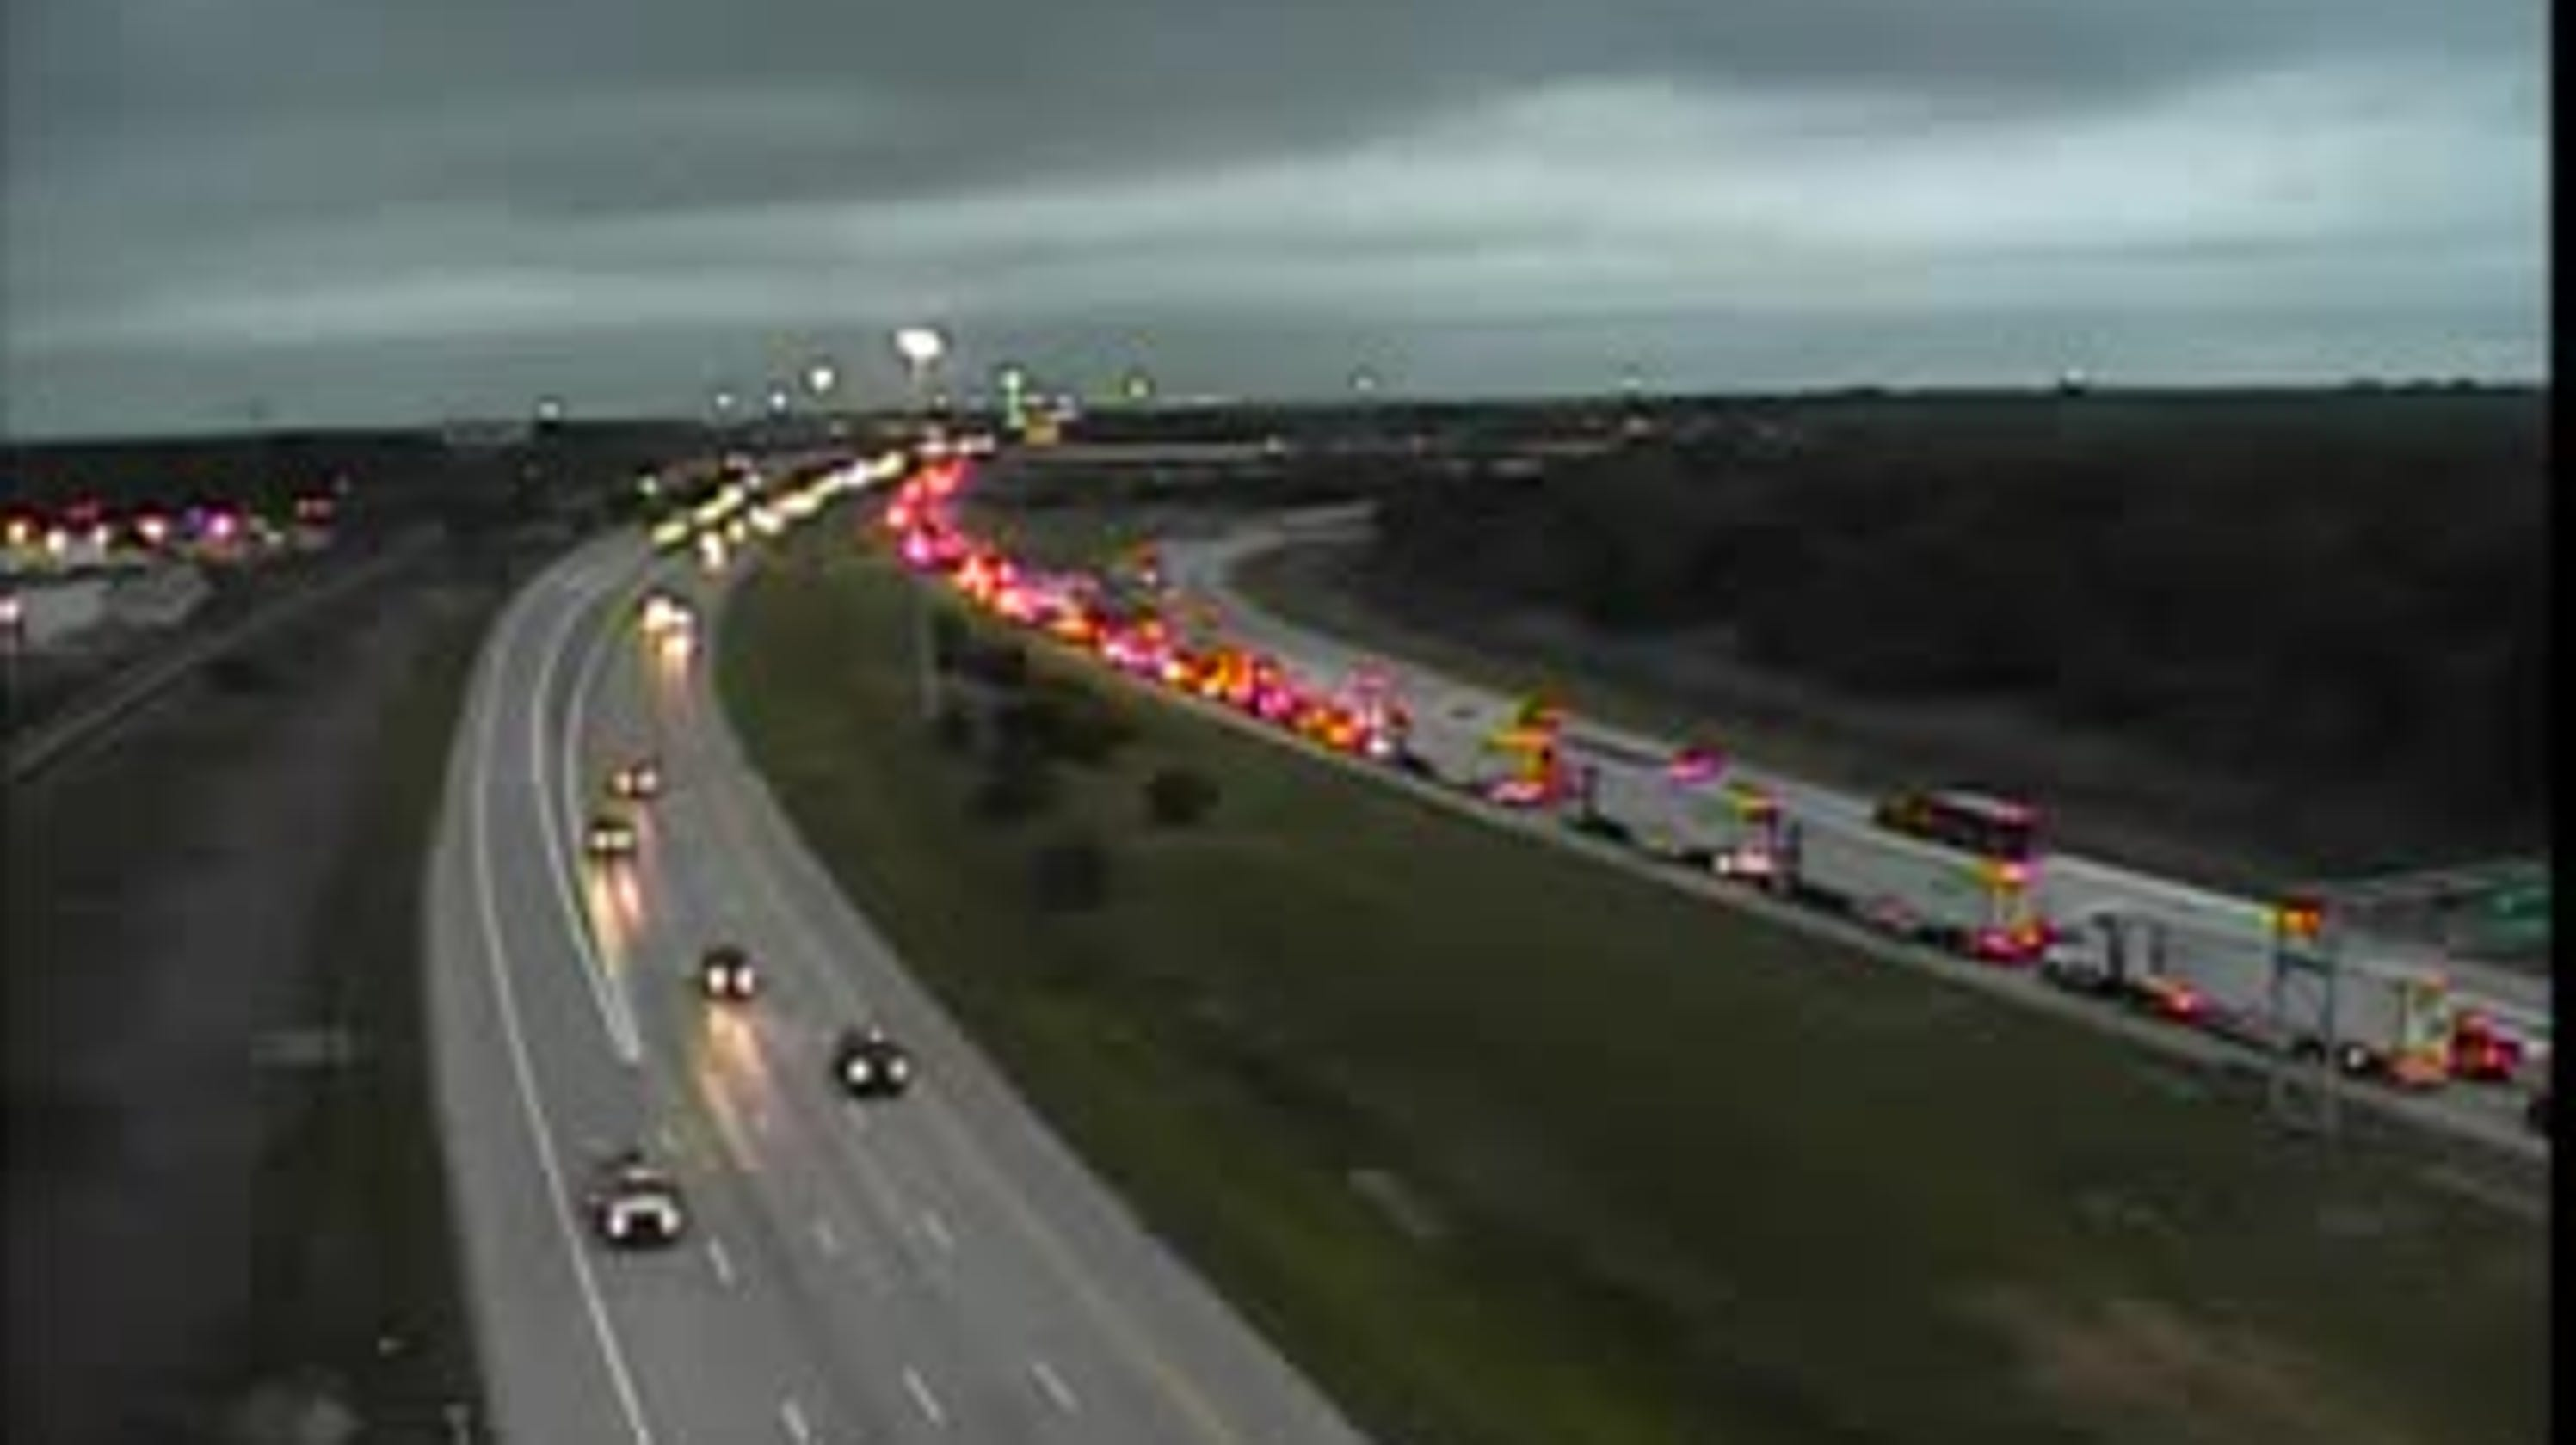 All but one lane closed on westbound I-94 at Southfield